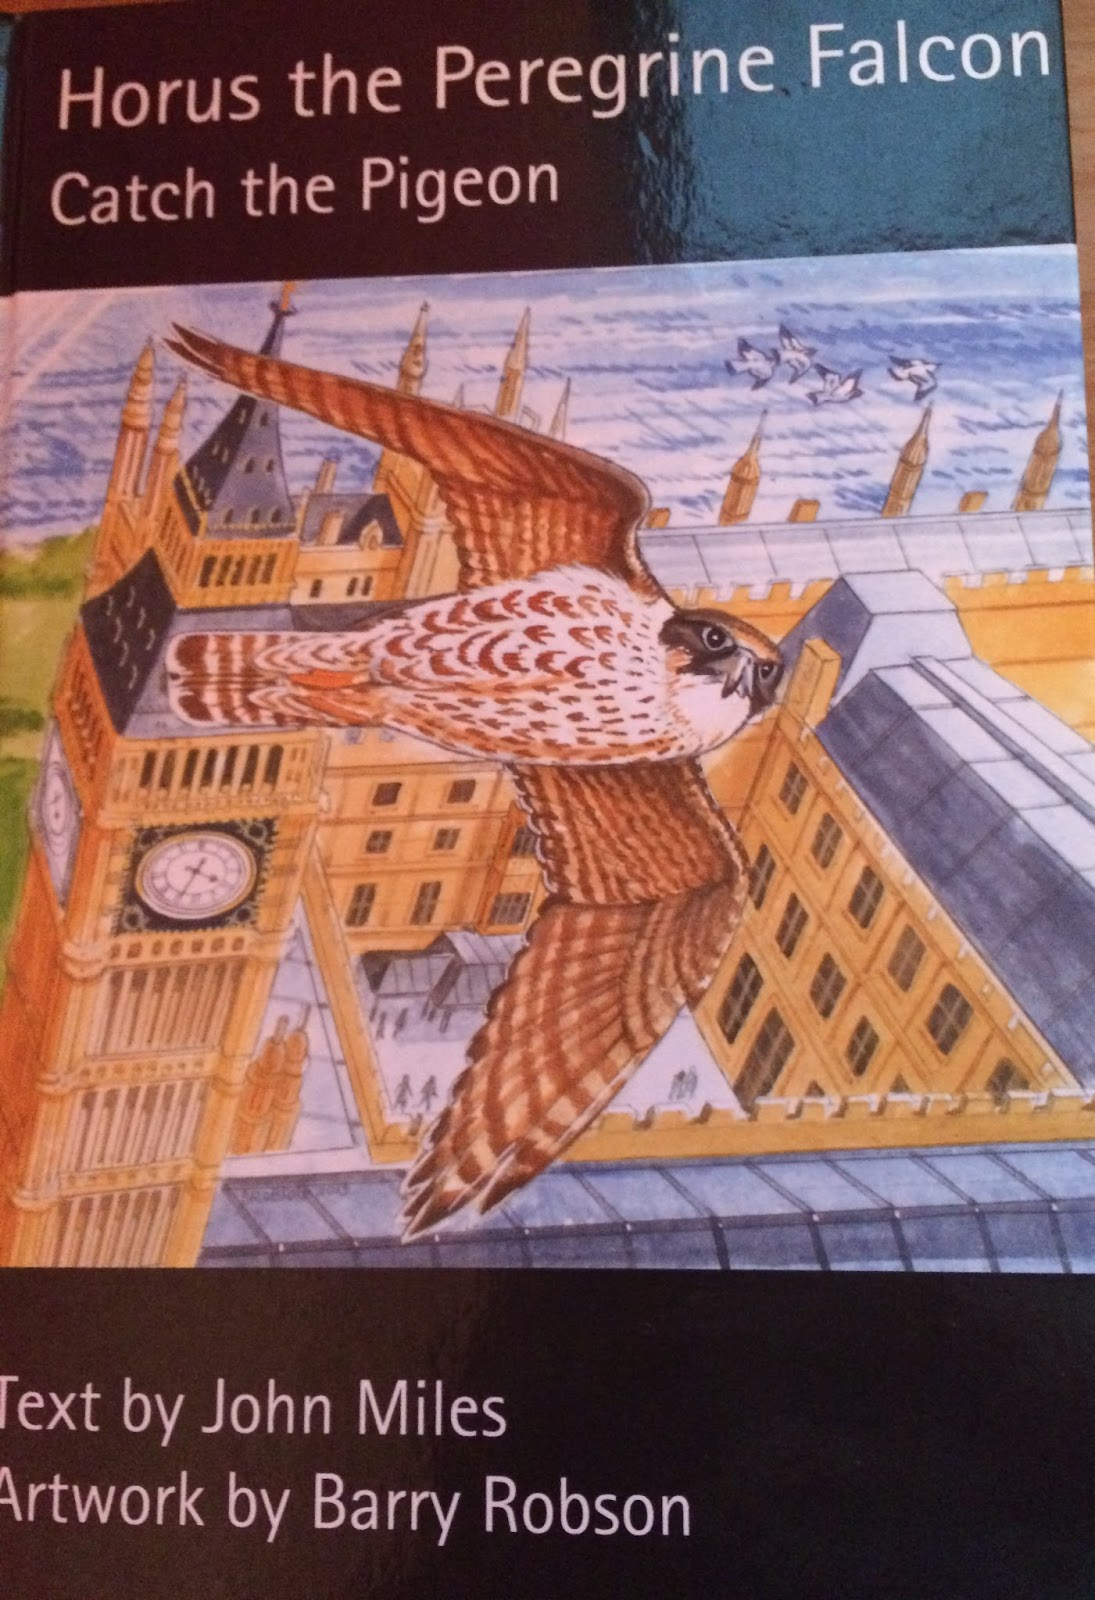 Horus the Peregrine Falcon and series of books